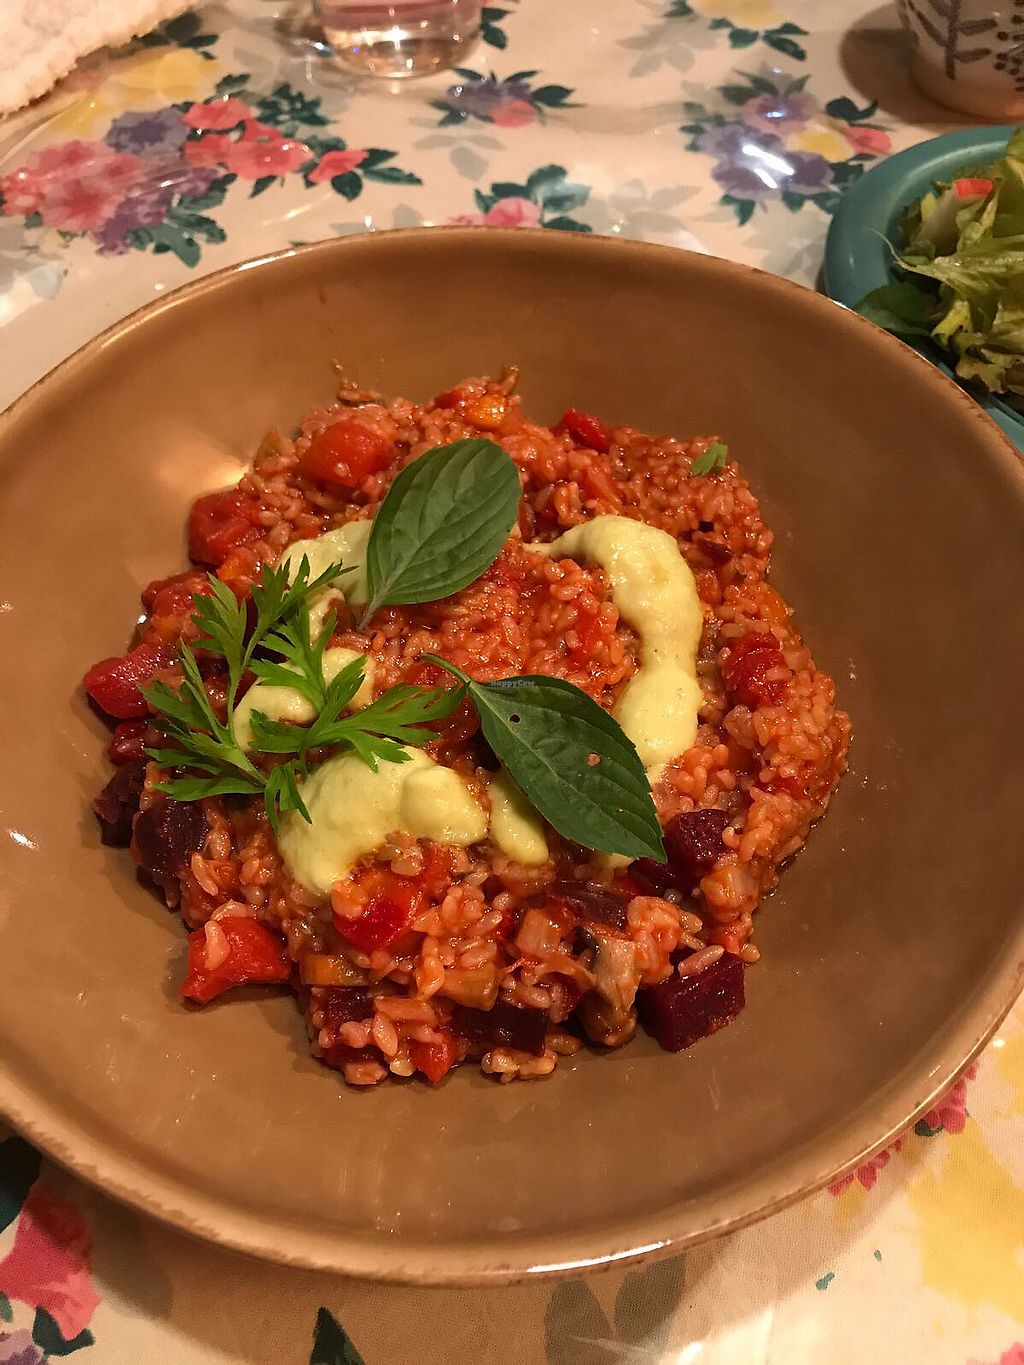 """Photo of CLOSED: Le Coccole  by <a href=""""/members/profile/ErikvanHest"""">ErikvanHest</a> <br/>Vegan risotto with tomato and zuchini <br/> October 7, 2017  - <a href='/contact/abuse/image/25584/312579'>Report</a>"""